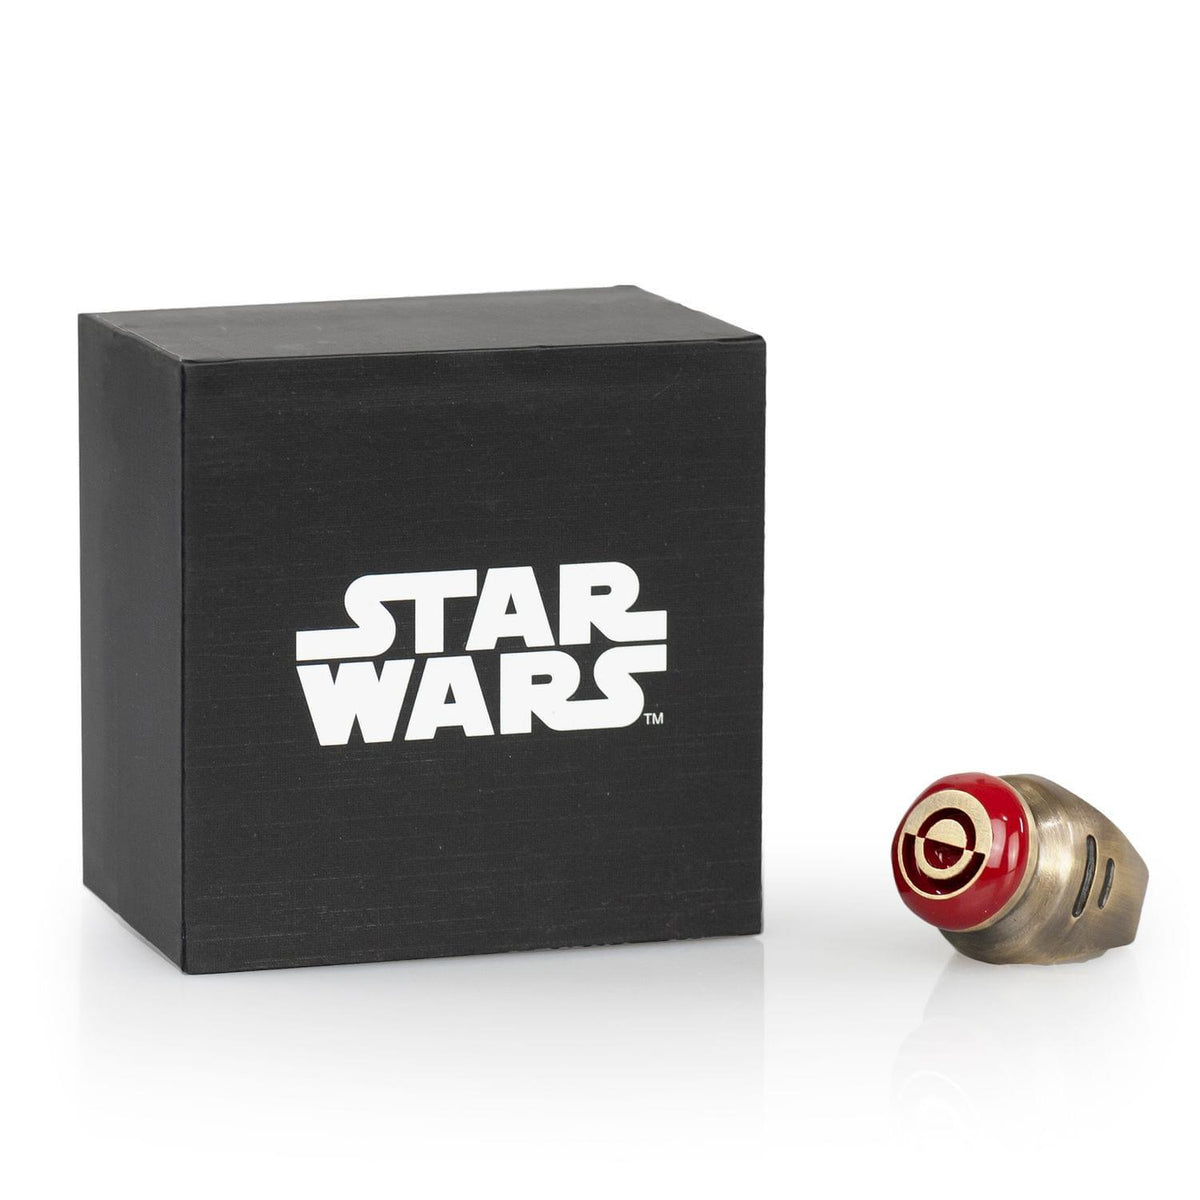 Star Wars Crimson Dawn Signet Ring Prop Replica - Size 10